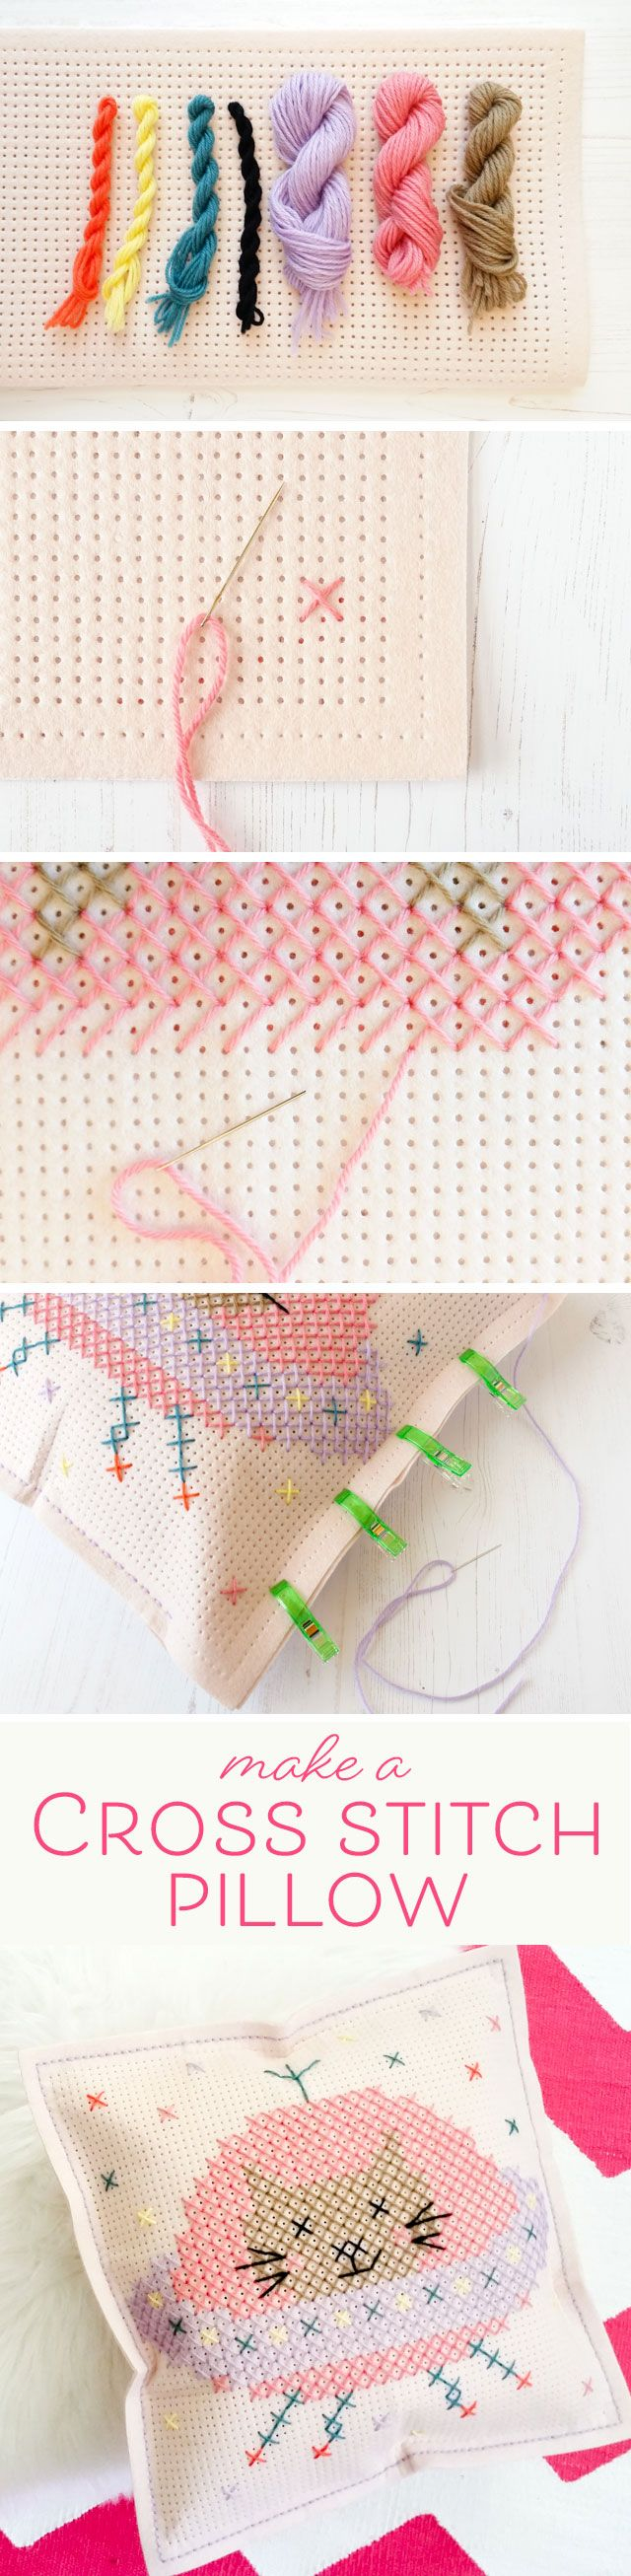 Modern Cross Stitch Pillow Kits : 1408 best Modern cross stitch images on Pinterest Bag patterns, Bed pillows and Craft ideas